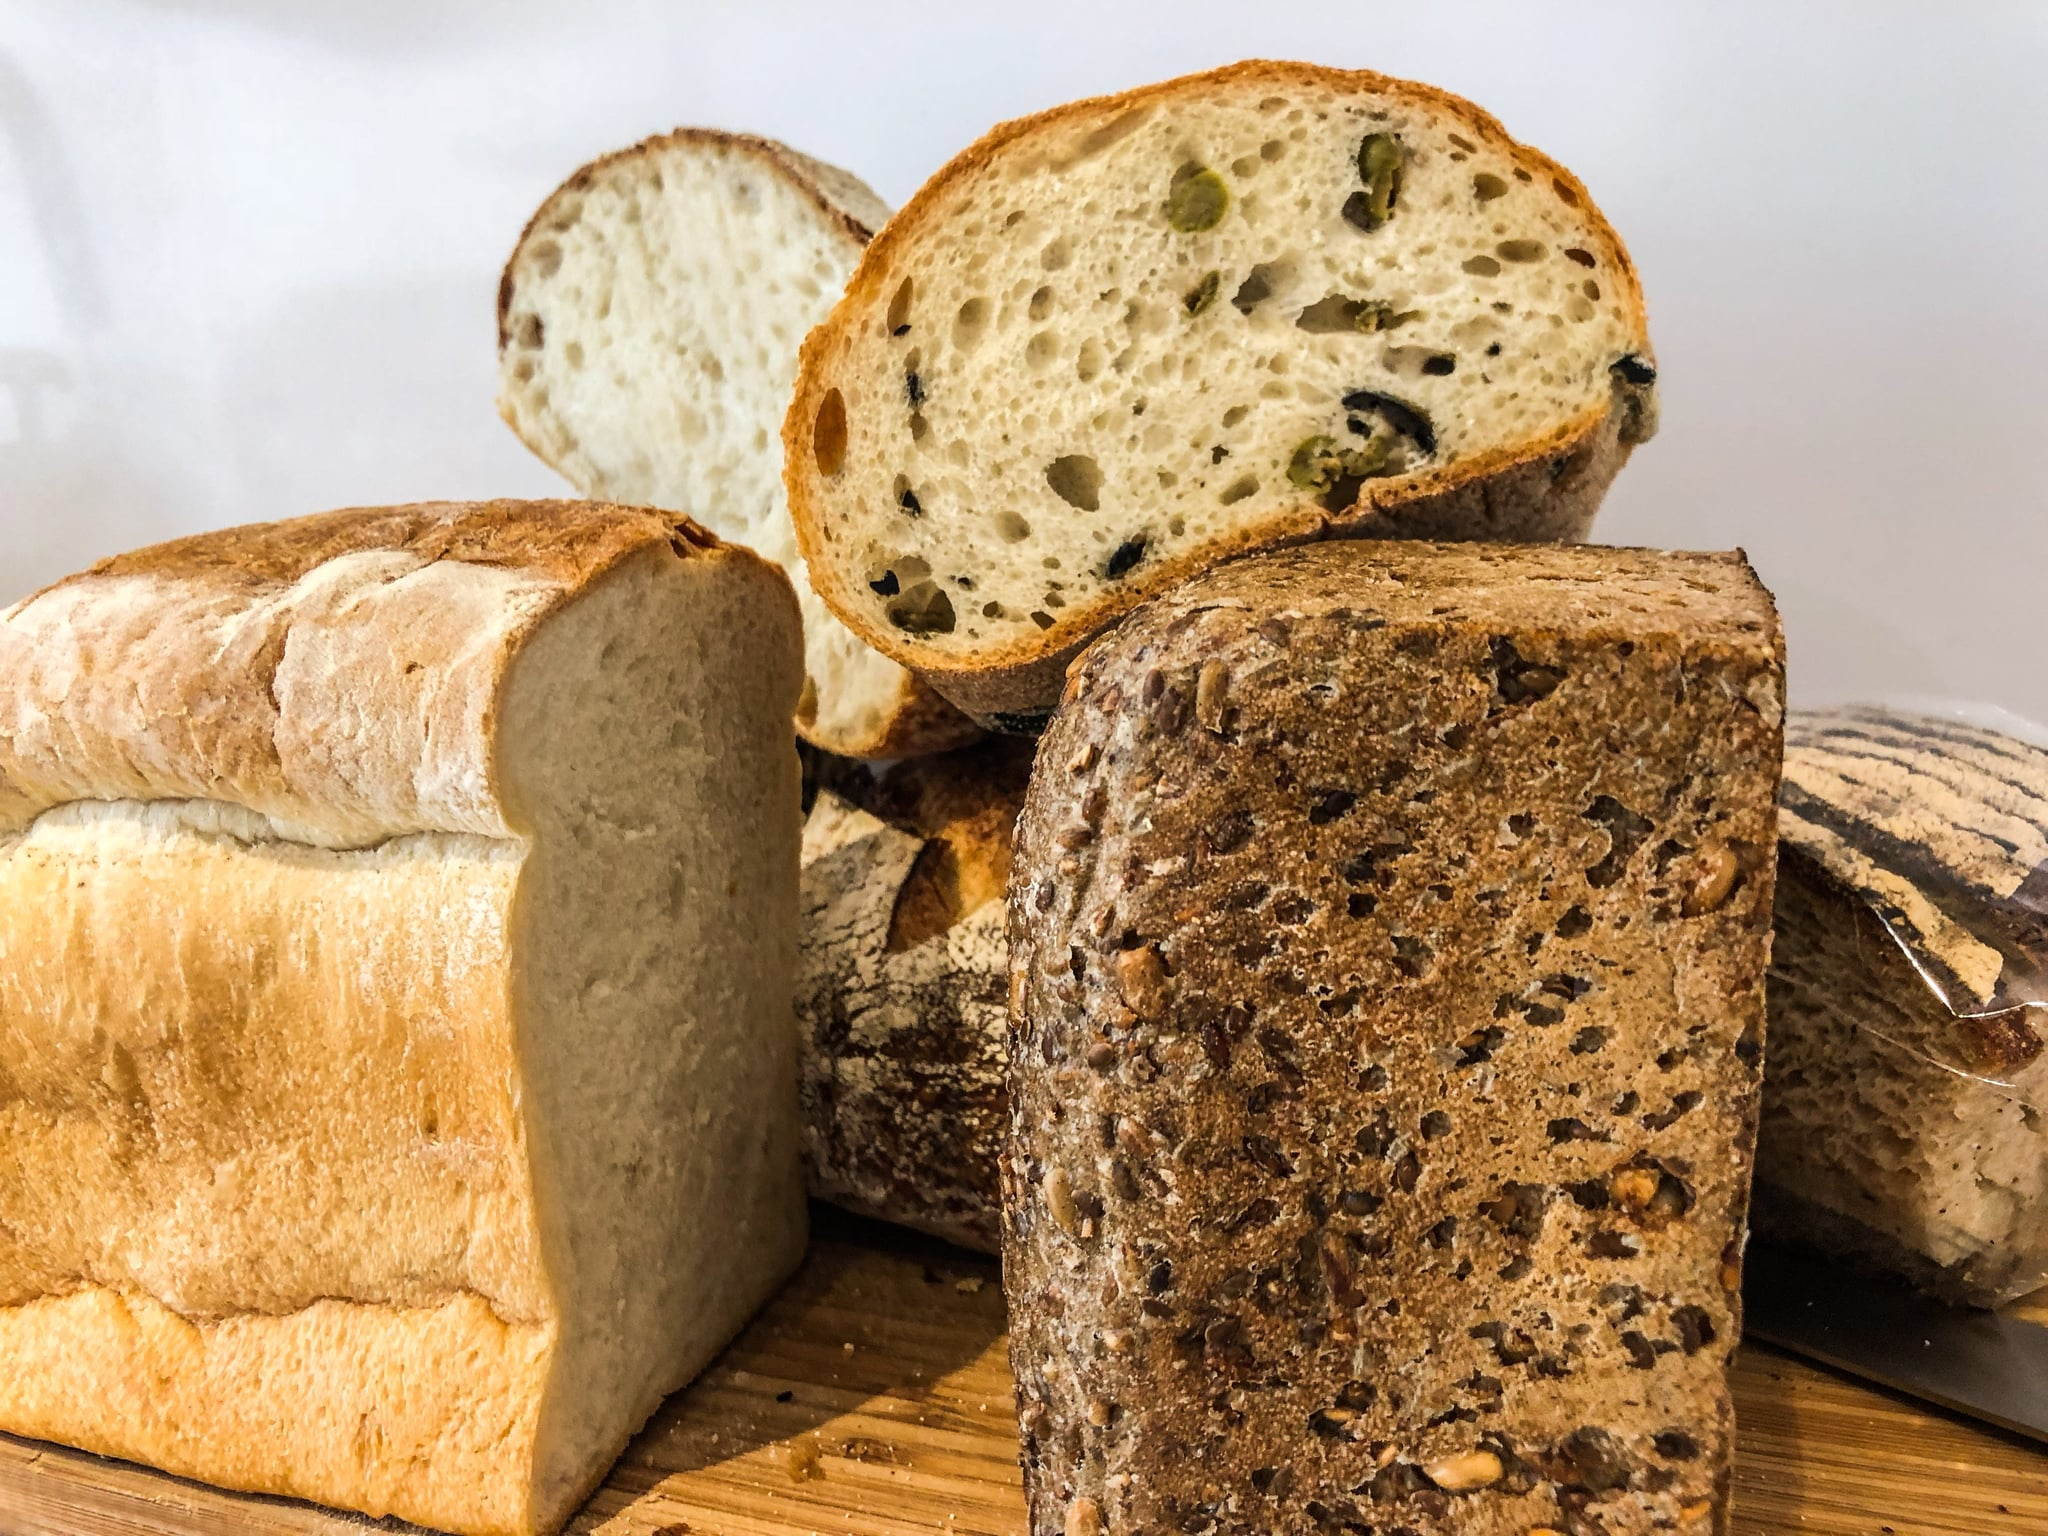 This Dietitian-Approved Diet Puts Bread Back on Your Plate, but You'll Need to Shop Wisely